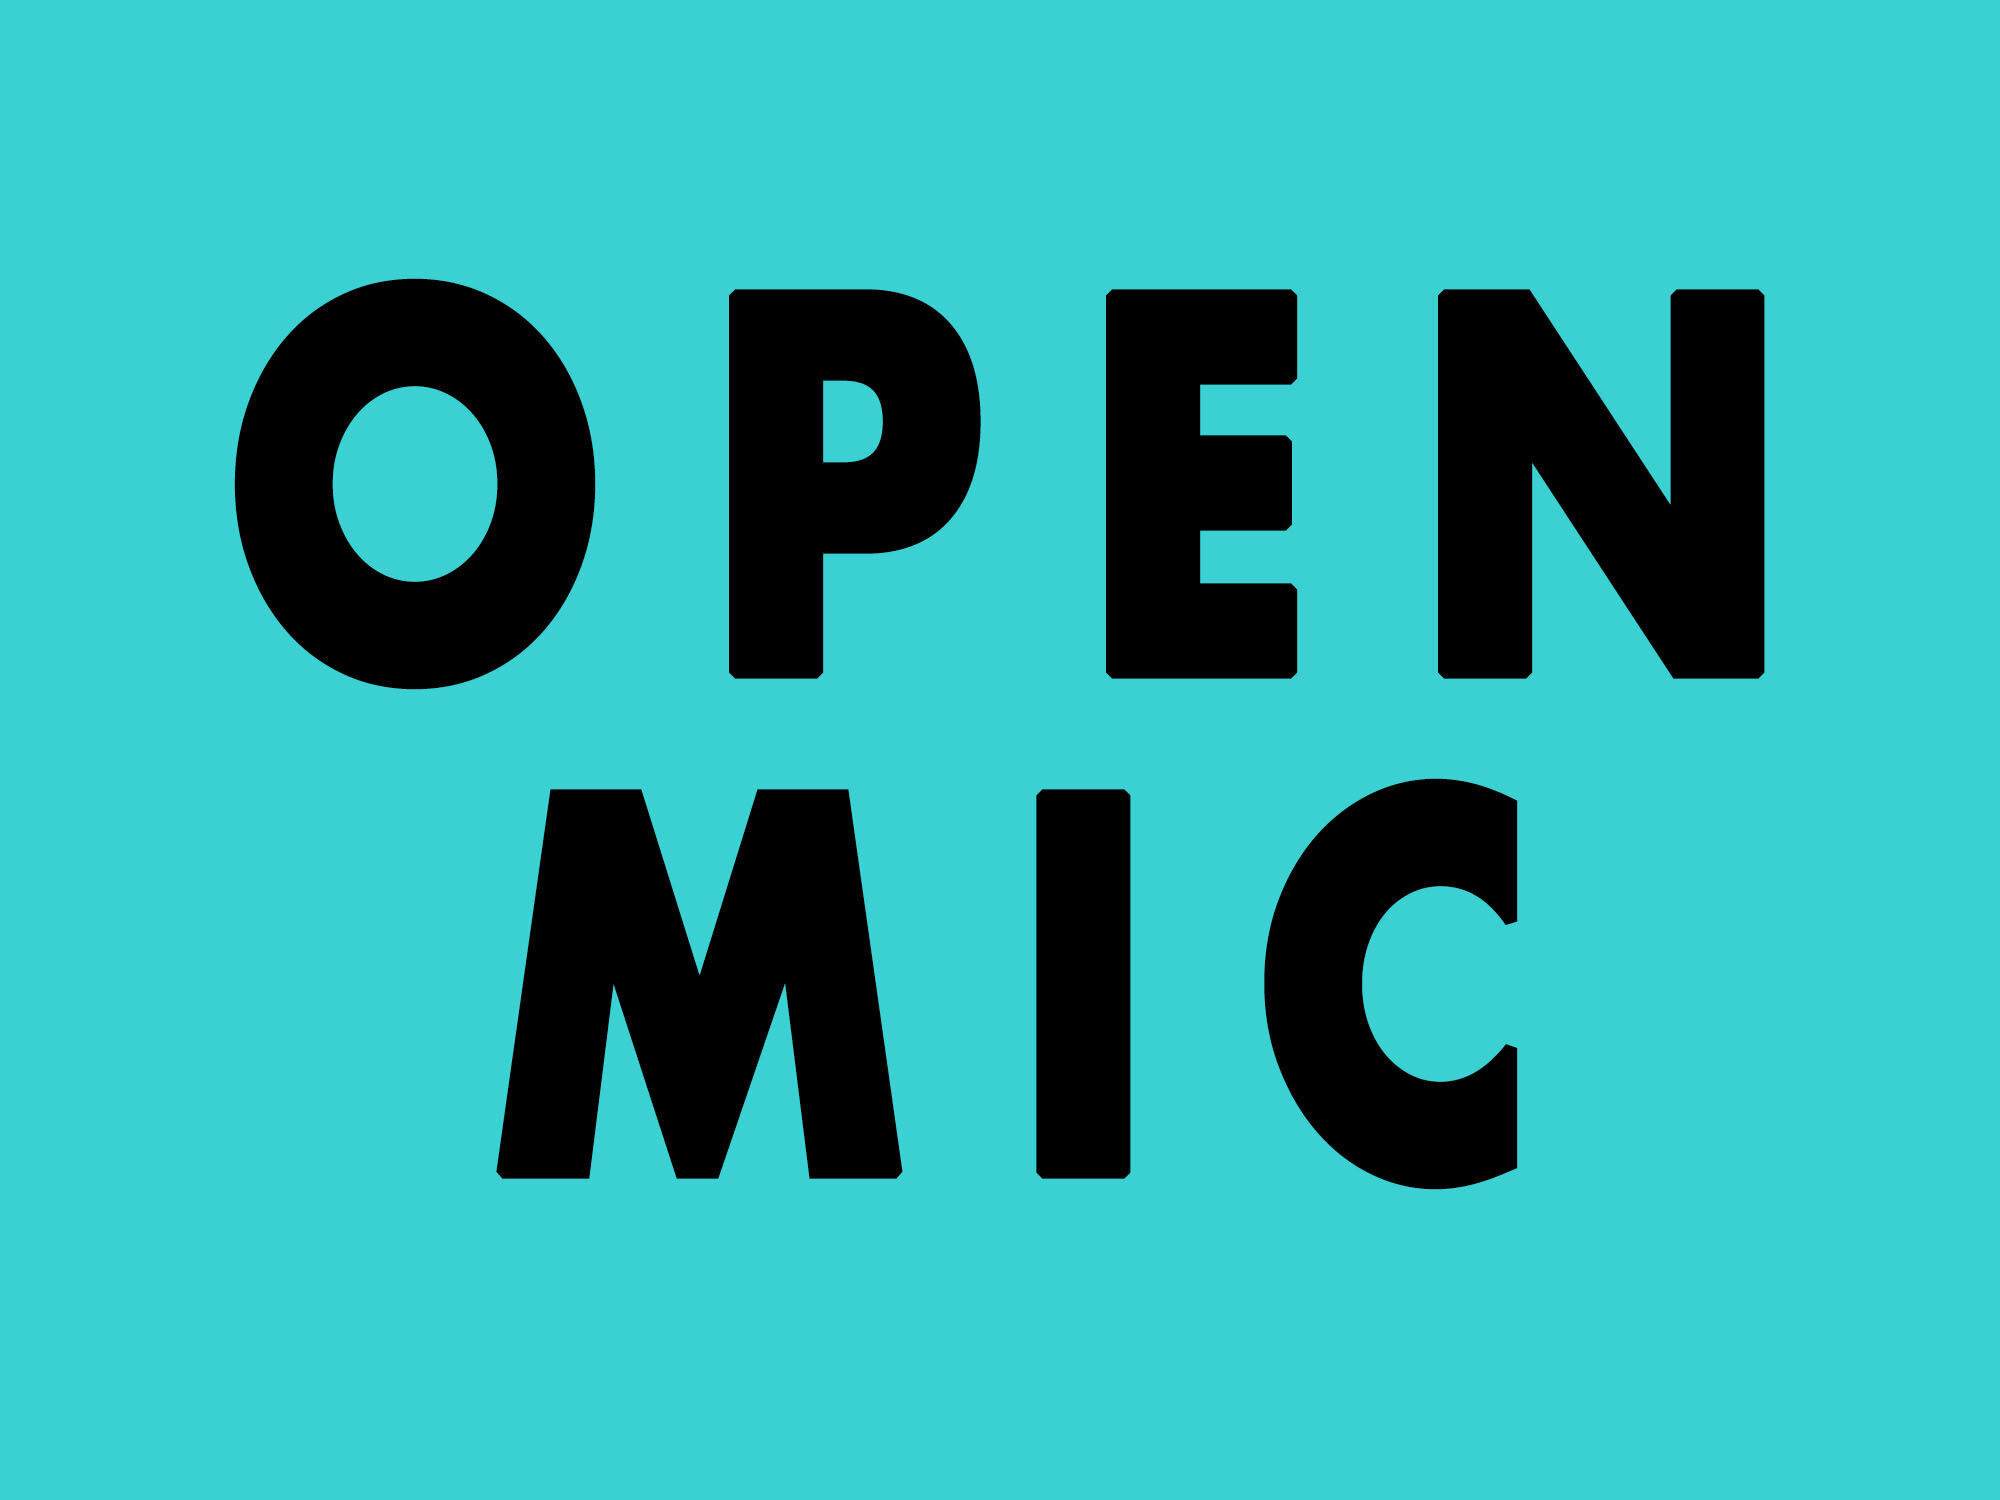 3rd Thursday - Open Mic Night - Every 3rd Thursday of the month, The Exchange and Theatre Box are hosting an Open Mic Night - we want to hear the diversity of our local talent - young and old, from spoken word - folk - jazz - rap - blues - pop - punk - experimental. All are welcome!